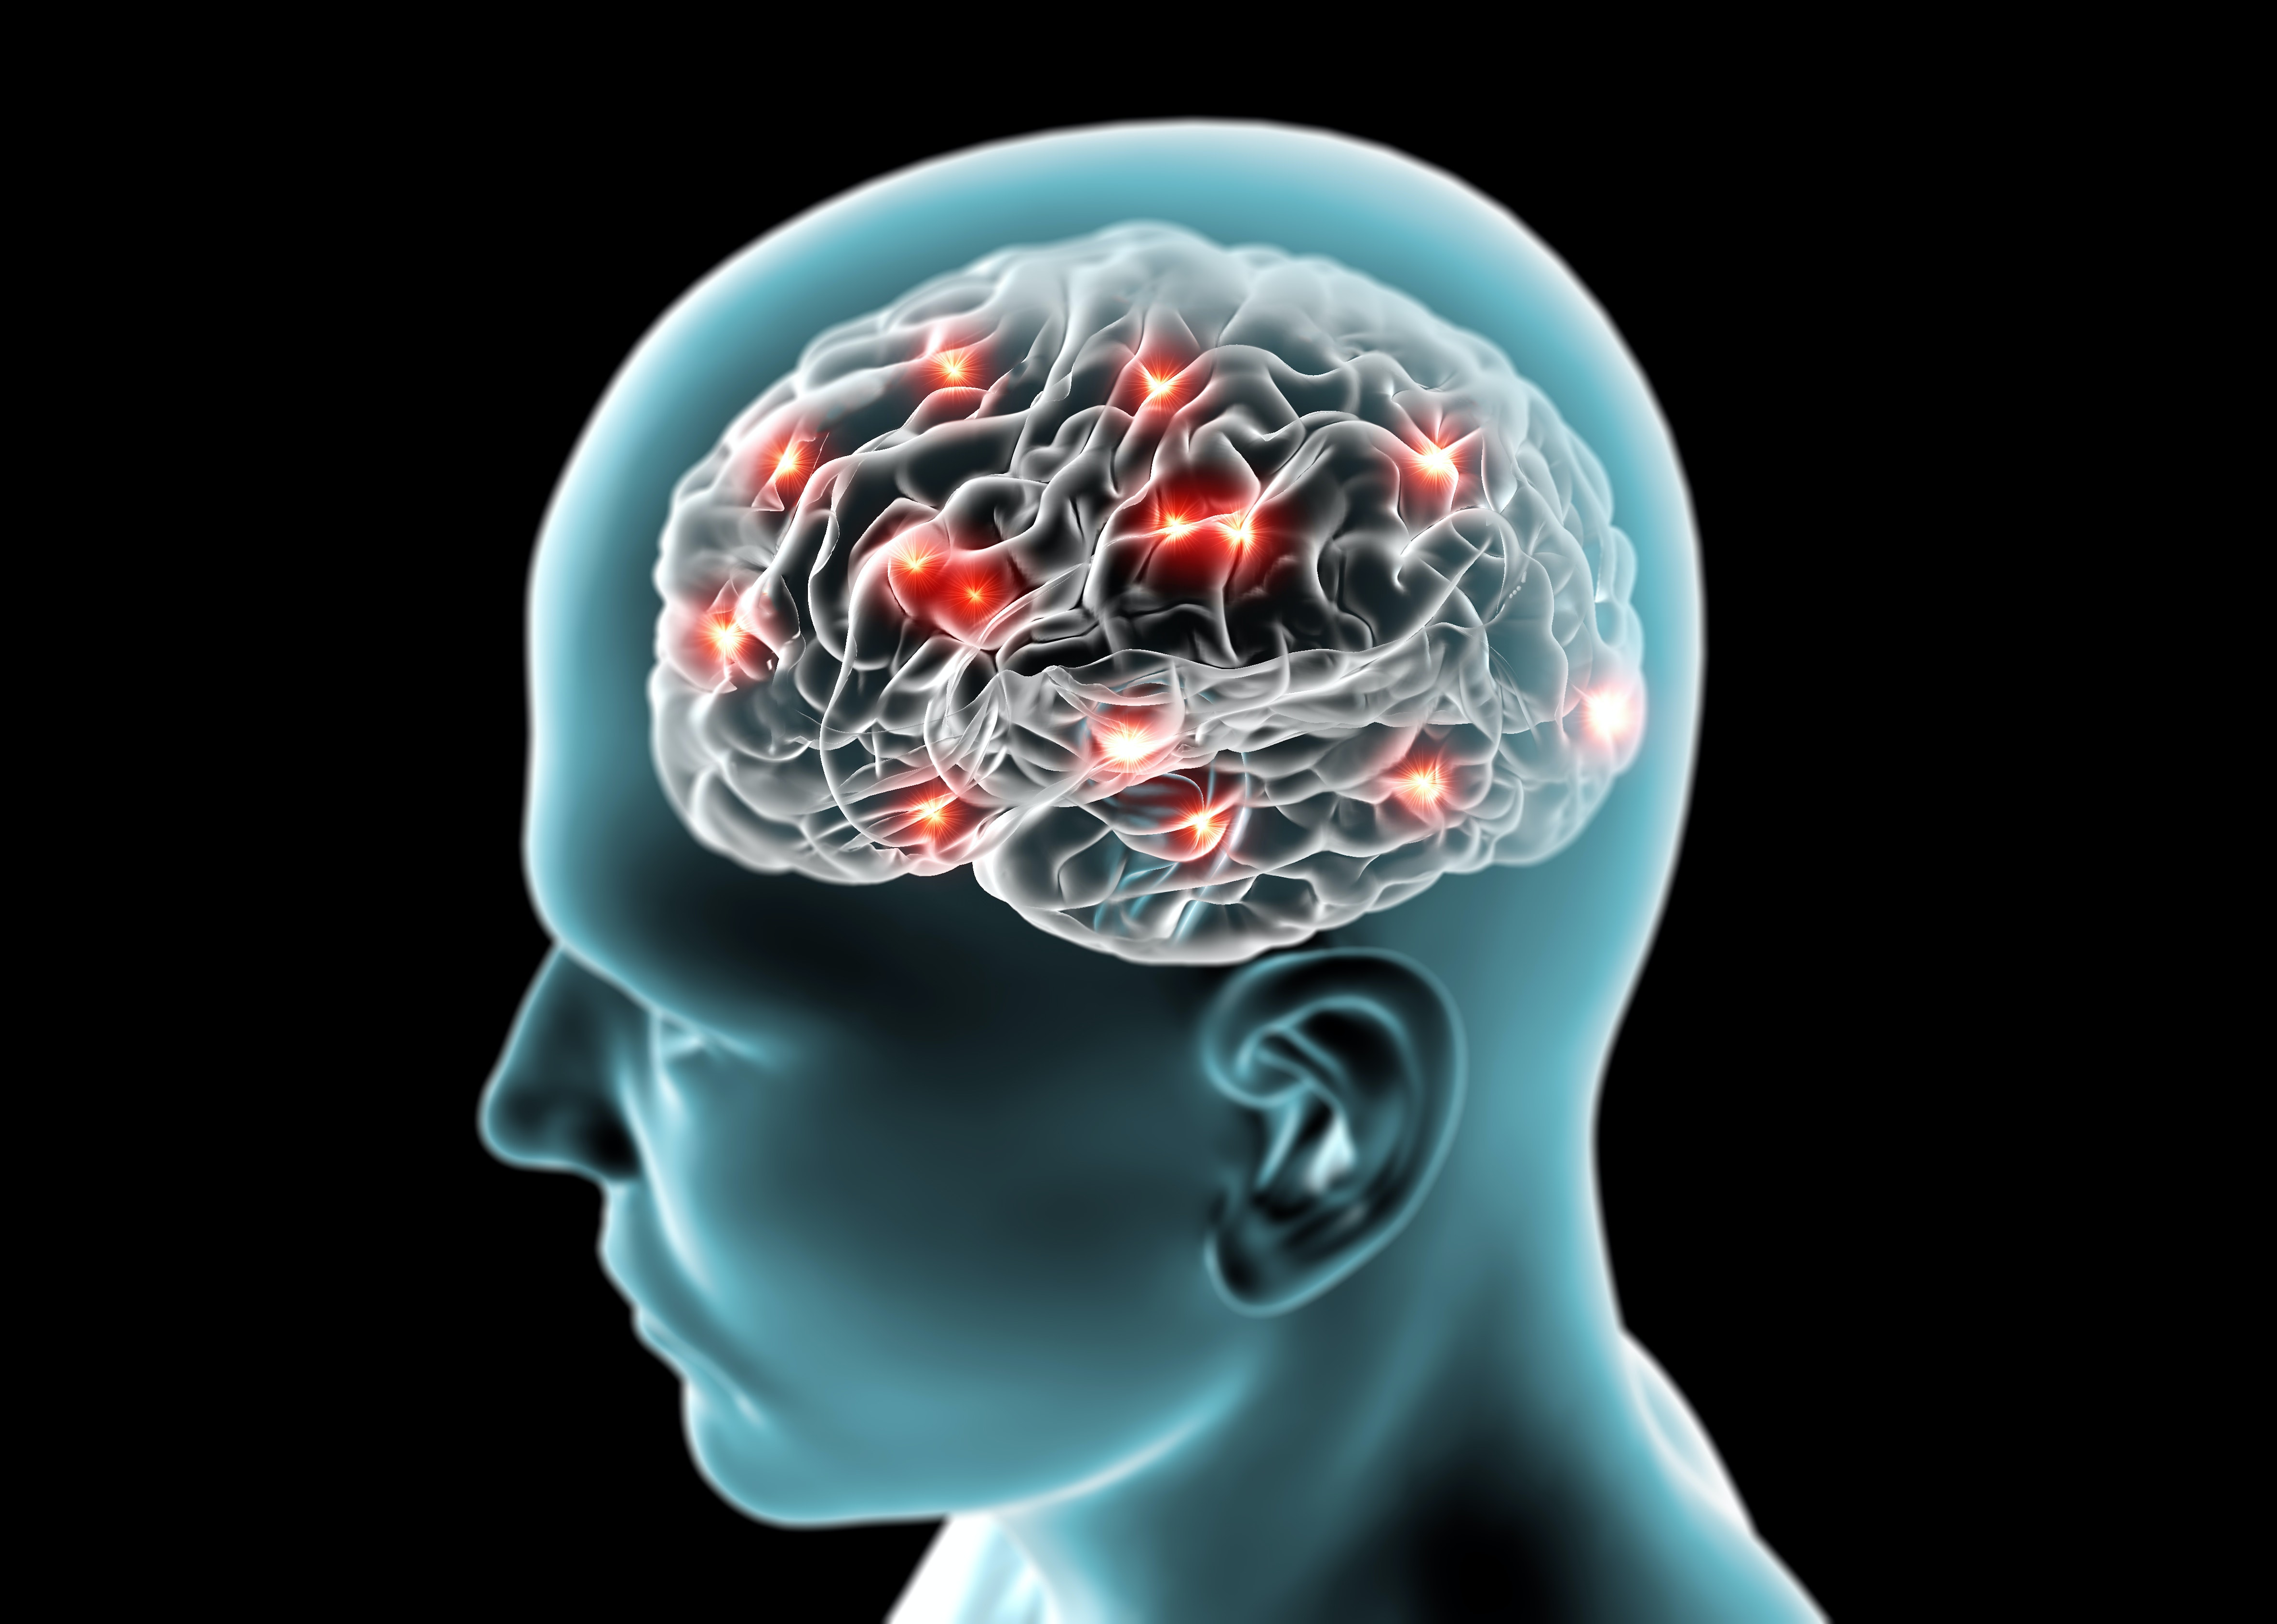 Antimatter changed physics, and the discovery of antimemories could revolutionise neuroscience